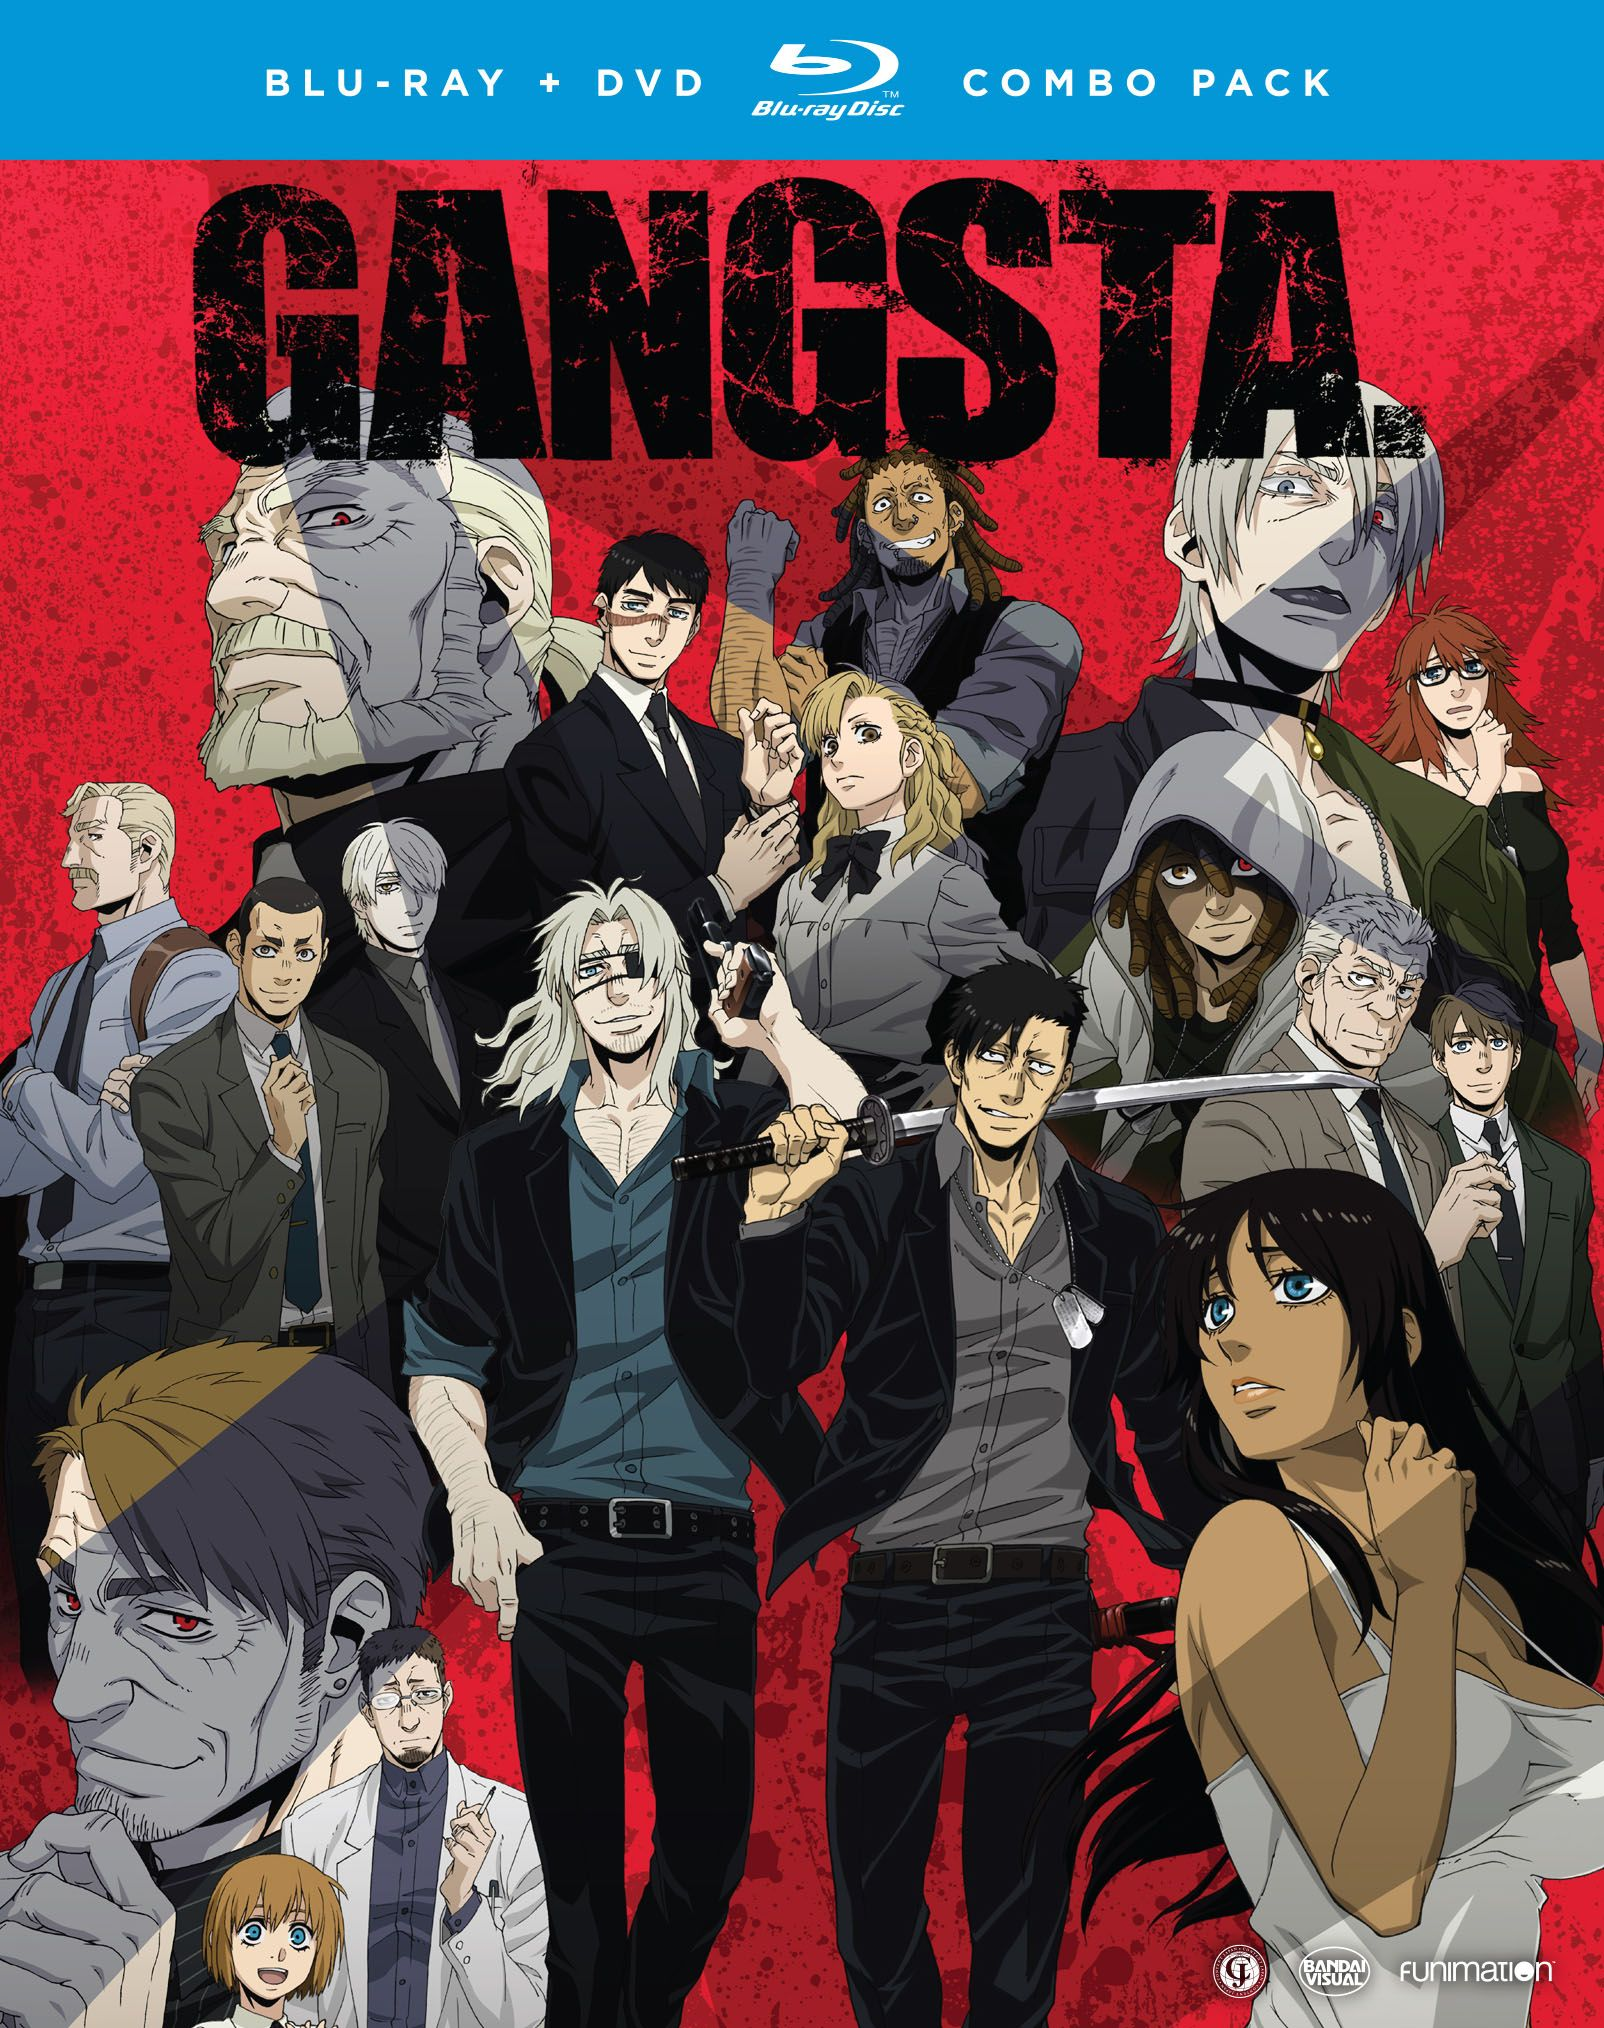 GANGSTA Complete Series Bluray/DVD (With images